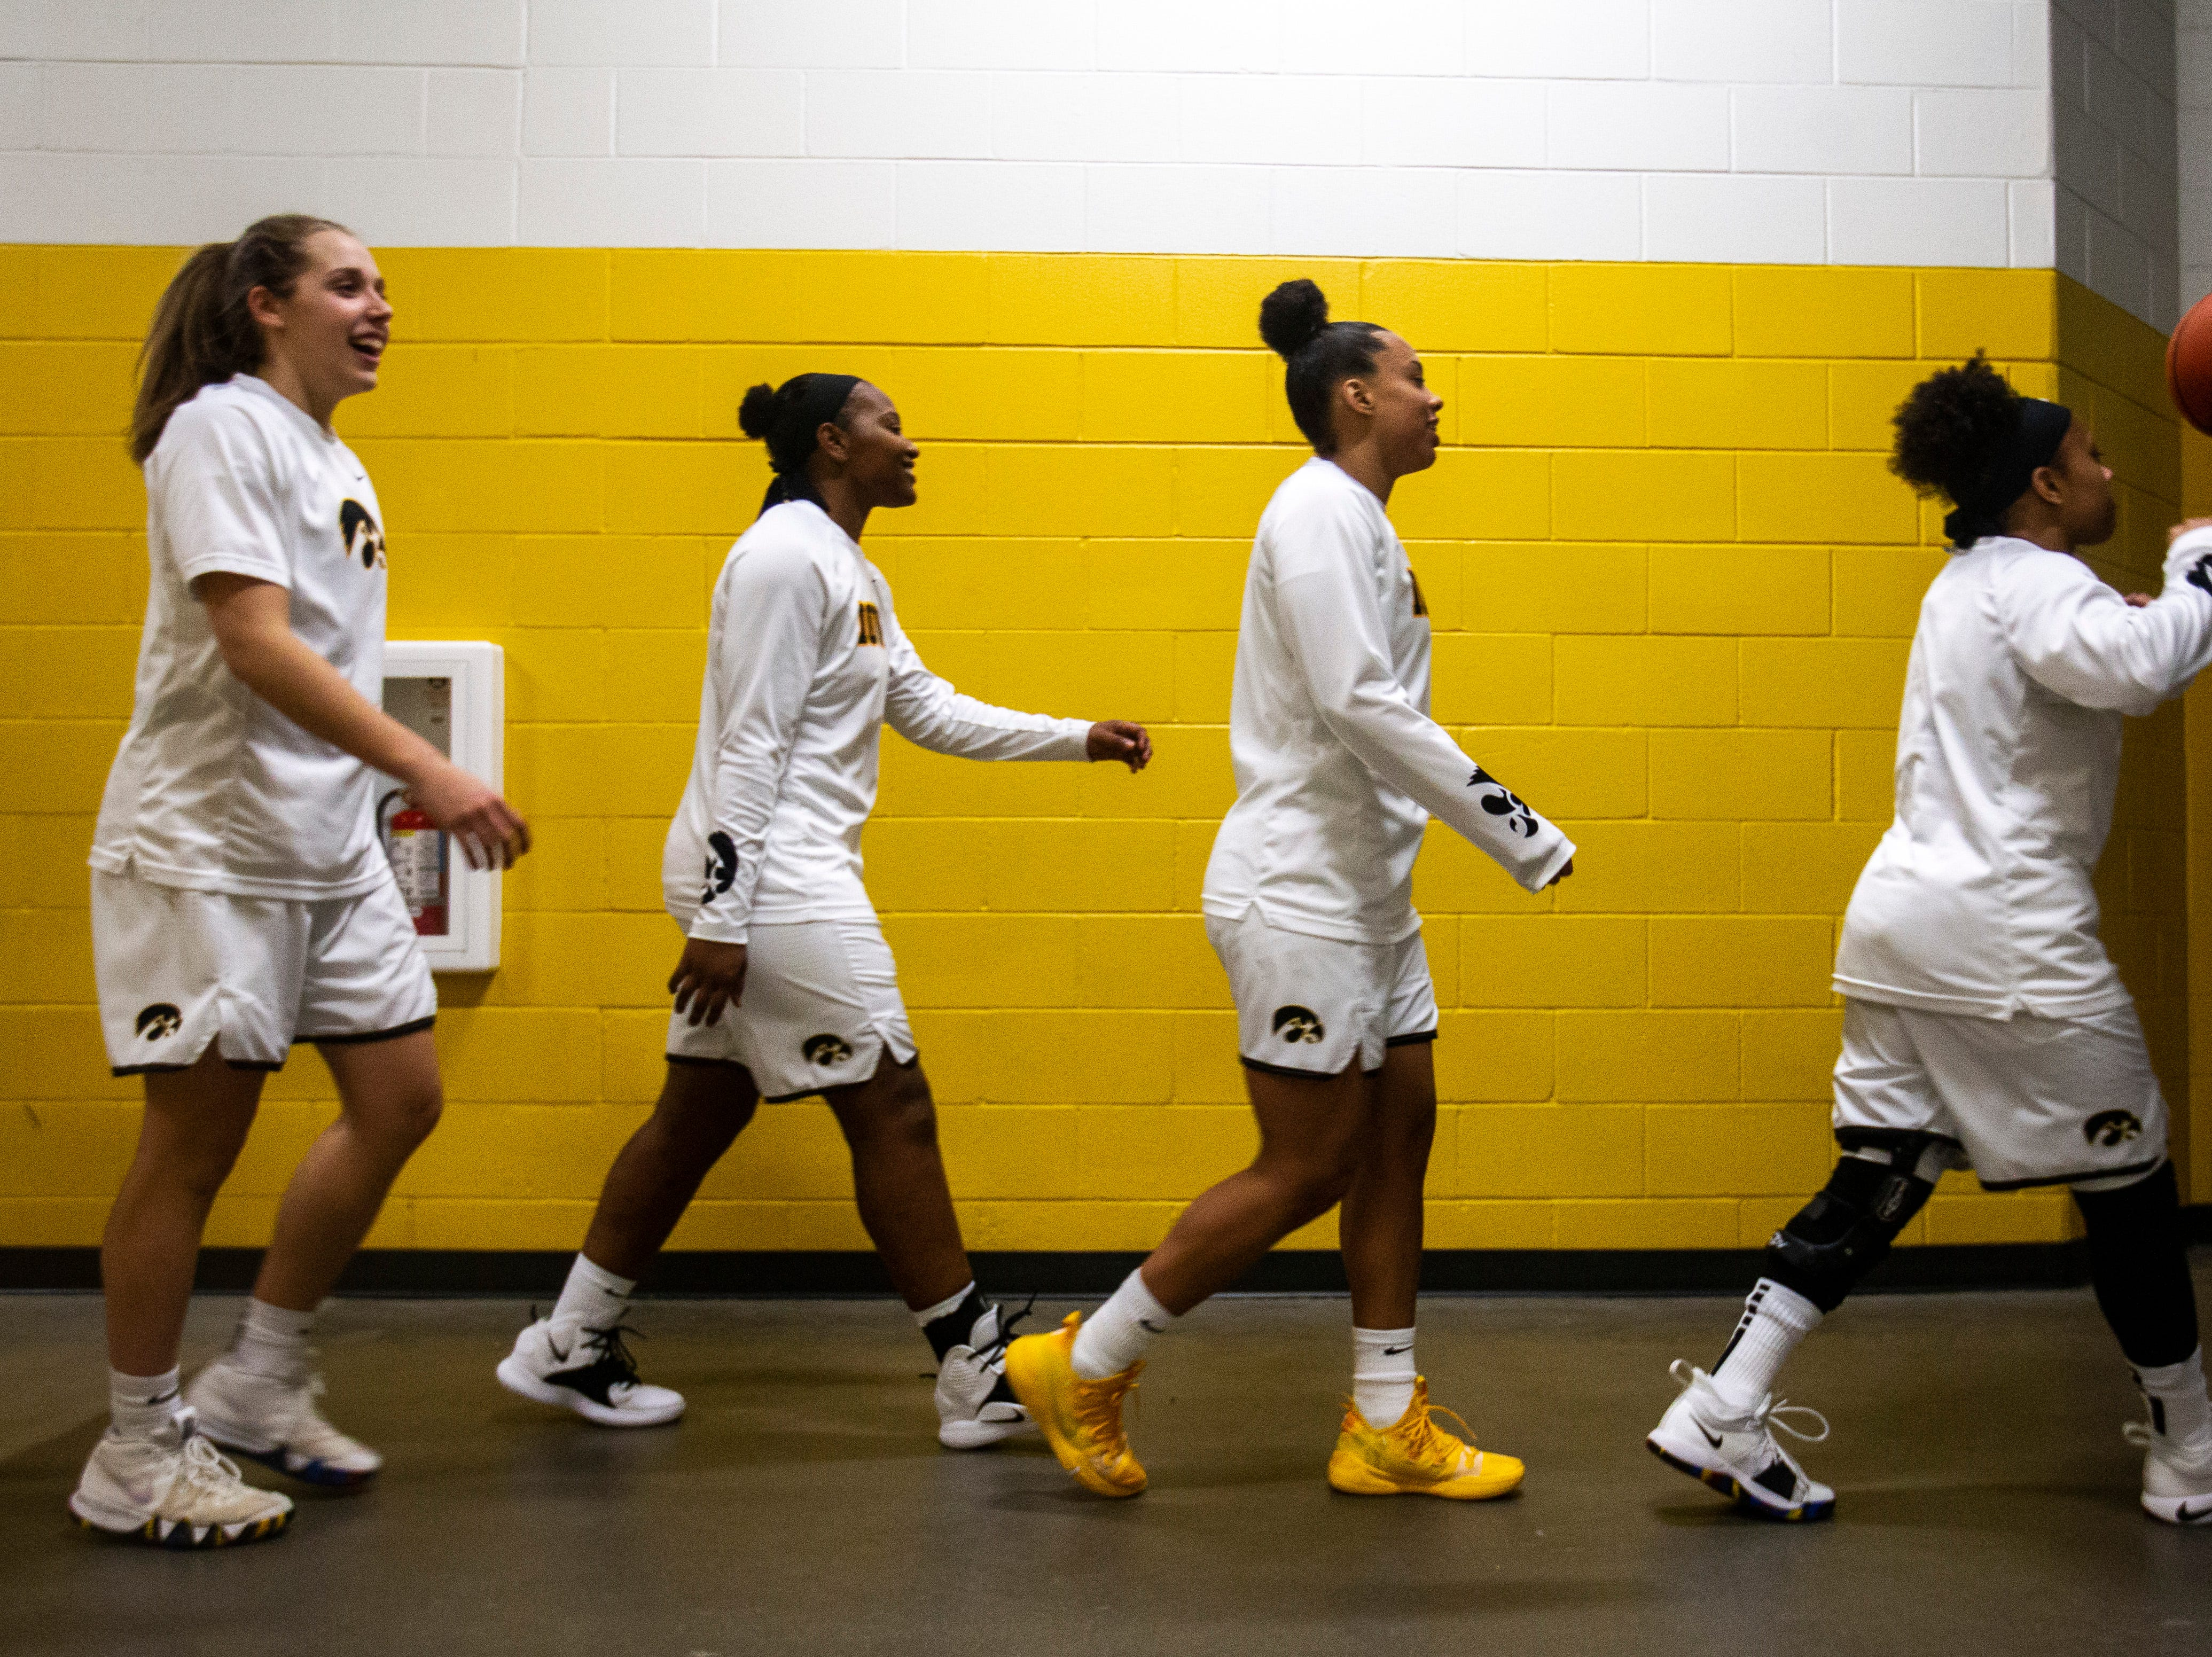 Iowa Hawkeyes Tania Davis (from right), Alexis Sevillian, Zion Sanders and Kathleen Doyle run out towards the court during a NCAA Big Ten Conference women's basketball game on Thursday, Feb. 14, 2019 at Carver-Hawkeye Arena in Iowa City, Iowa.